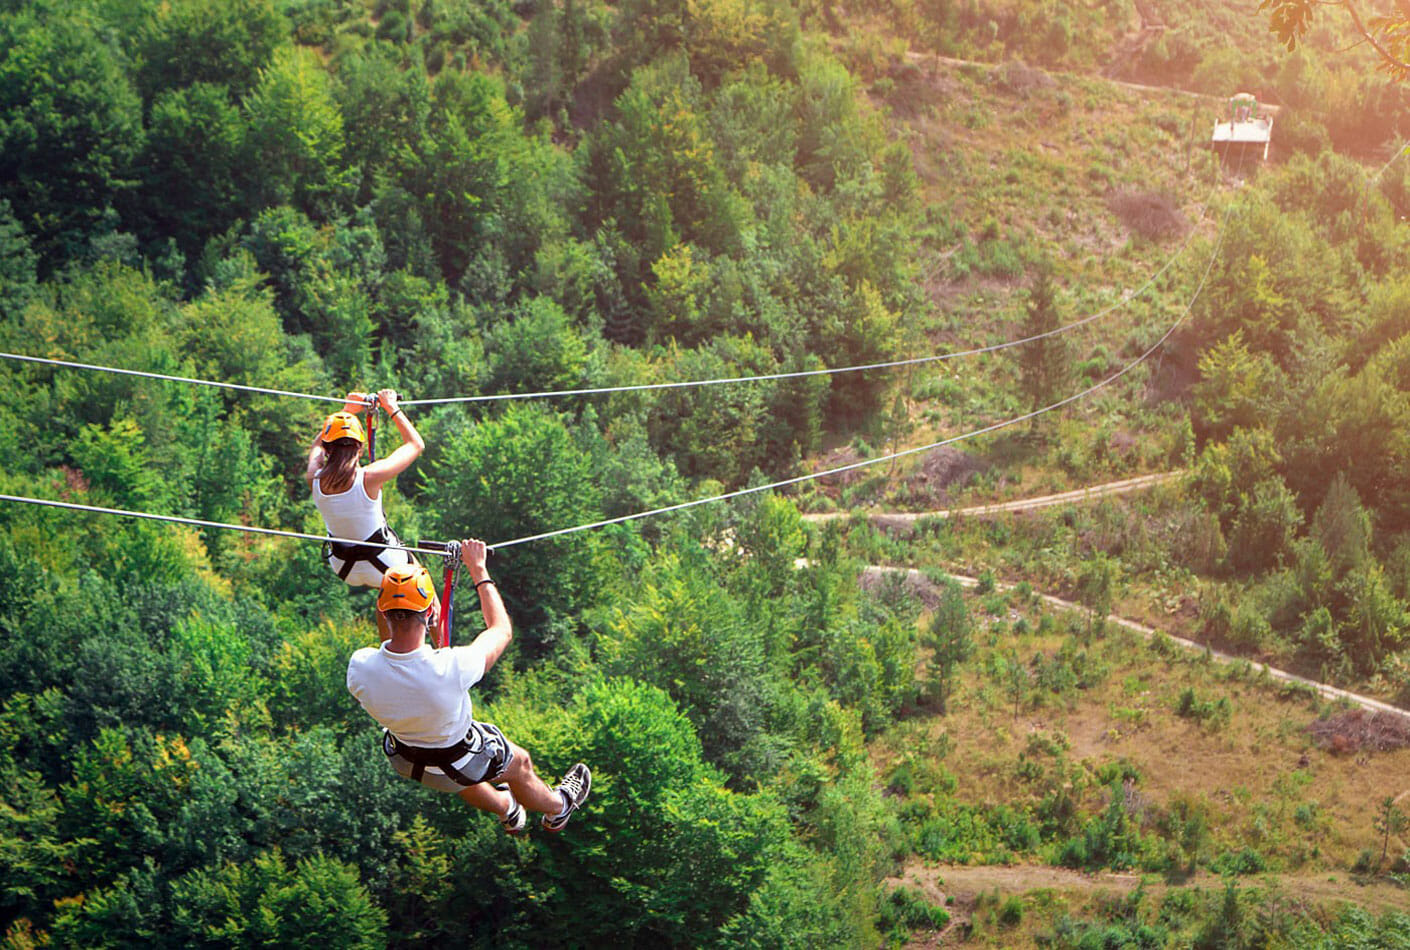 11Two tourists ziplining together, Montenegro